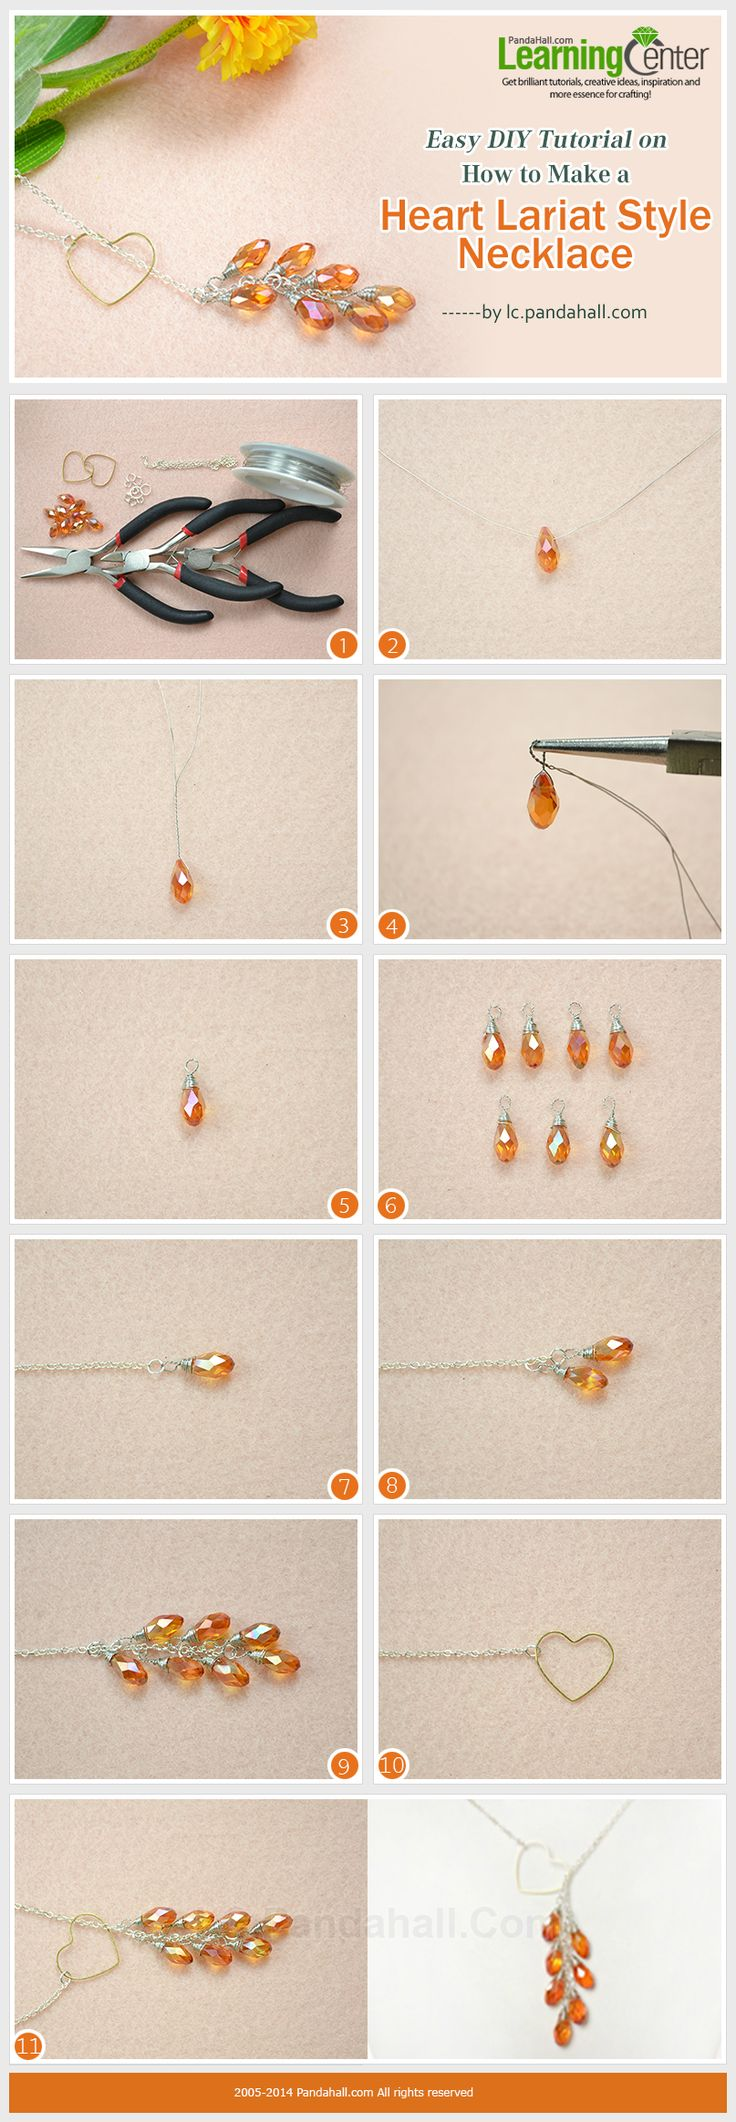 Easy DIY Tutorial on How to Make a Heart Lariat Style Necklace